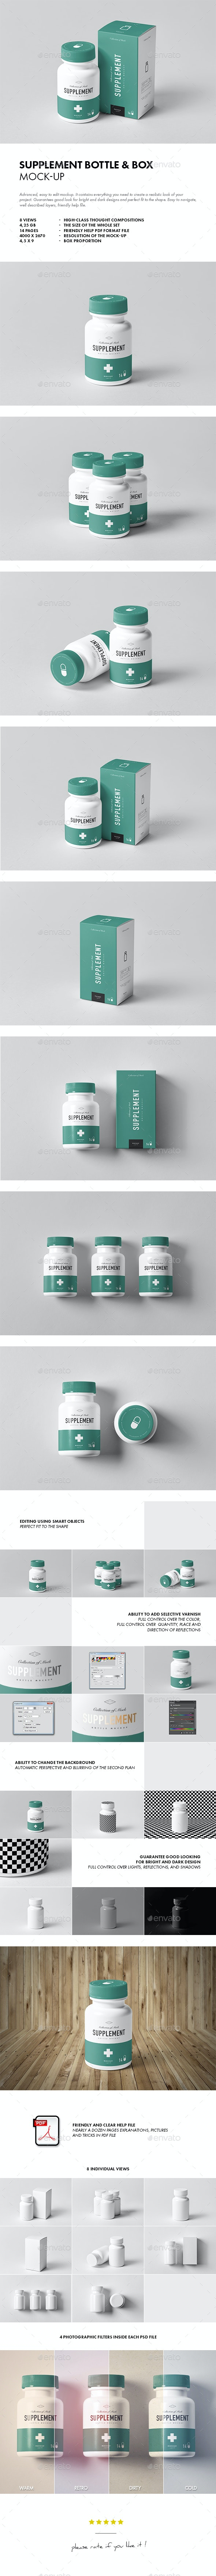 Supplement Jar & Box Mock-Up - Miscellaneous Packaging